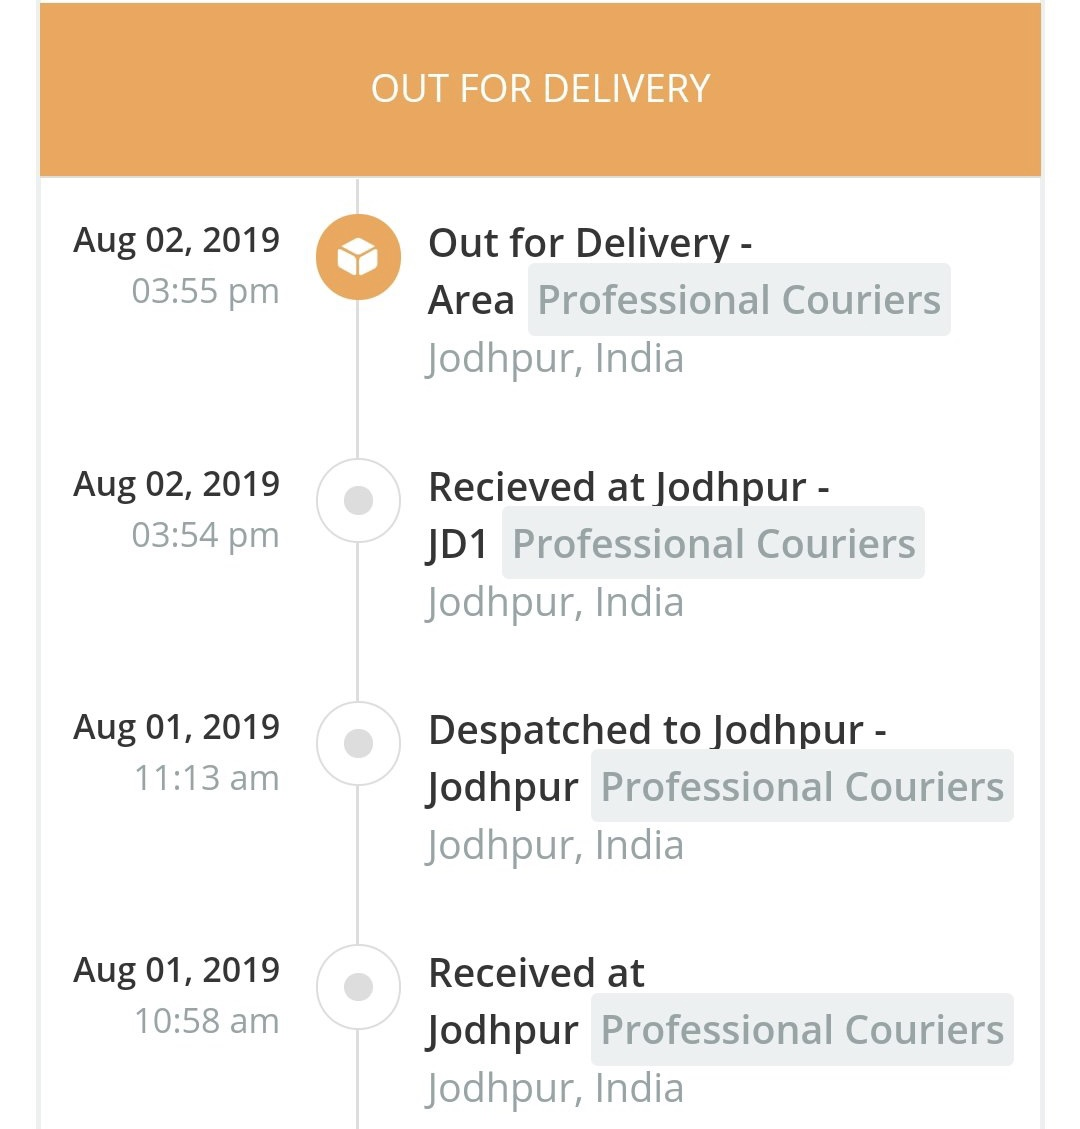 AfterShip Tracking a Package via Professional Couriers